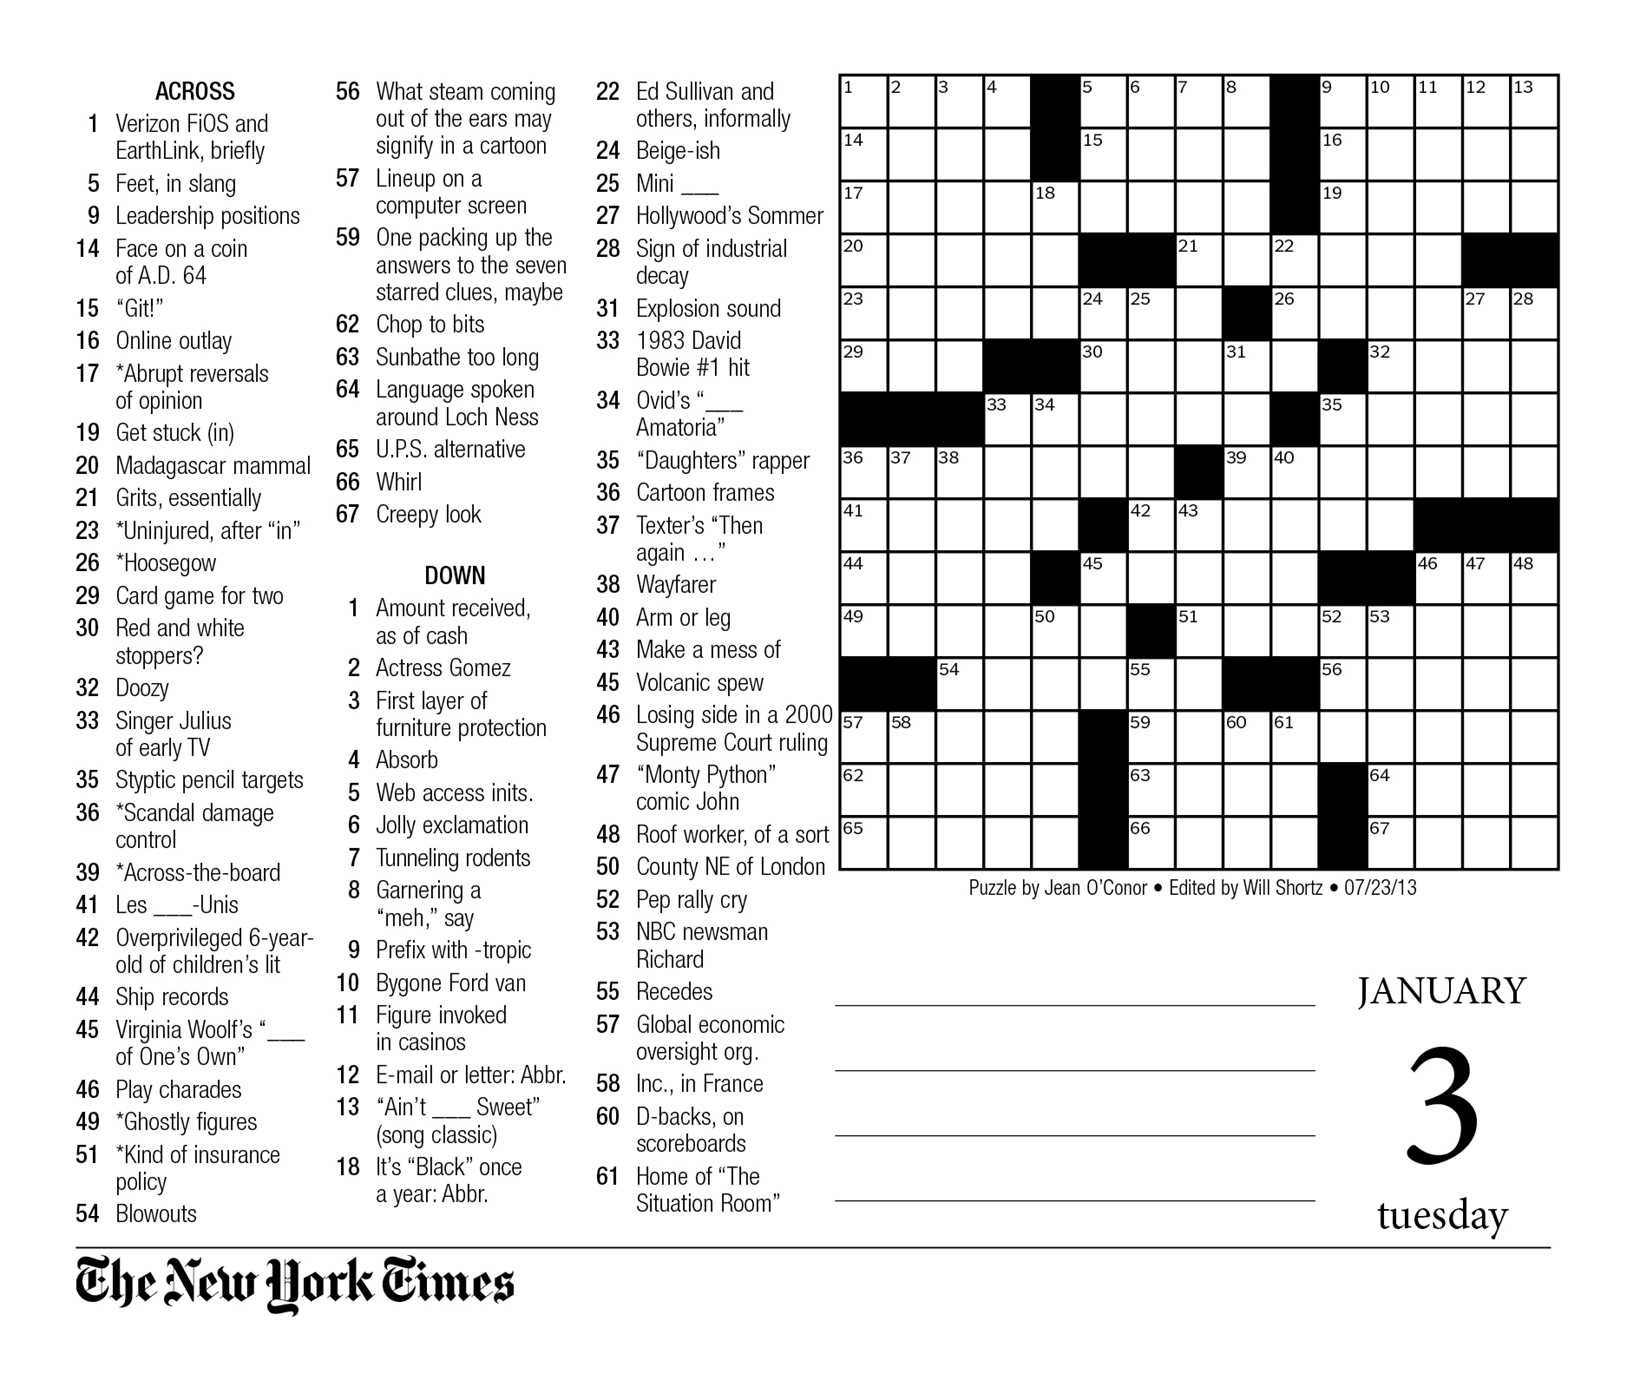 Play Free Crossword Puzzles From The Washington Post - The - Free - Free Printable Washington Post Crossword Puzzles